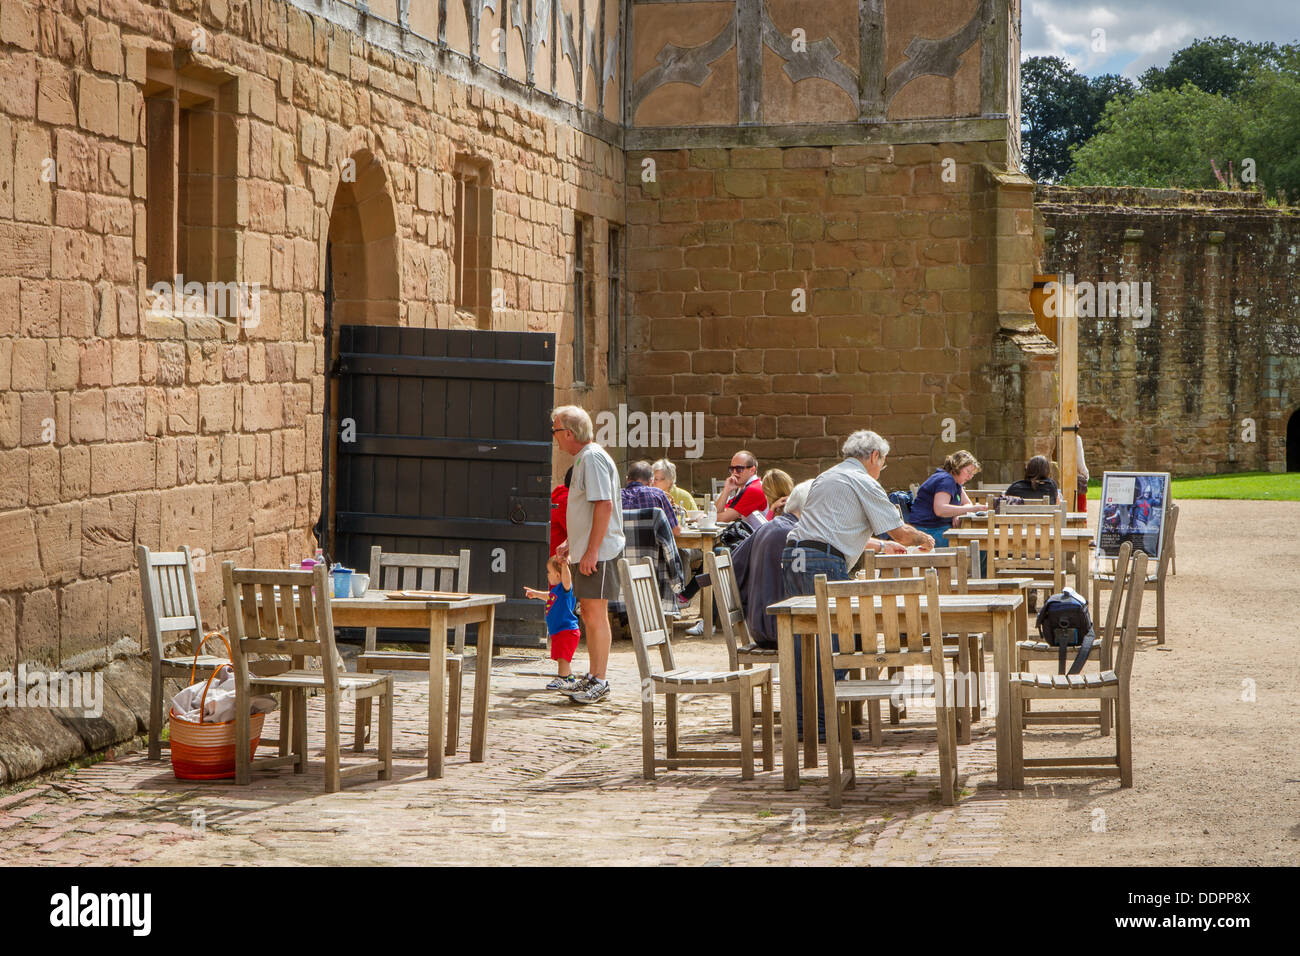 The Stables & Tearoom at Kenilworth Castle, Warwickshire, England. - Stock Image